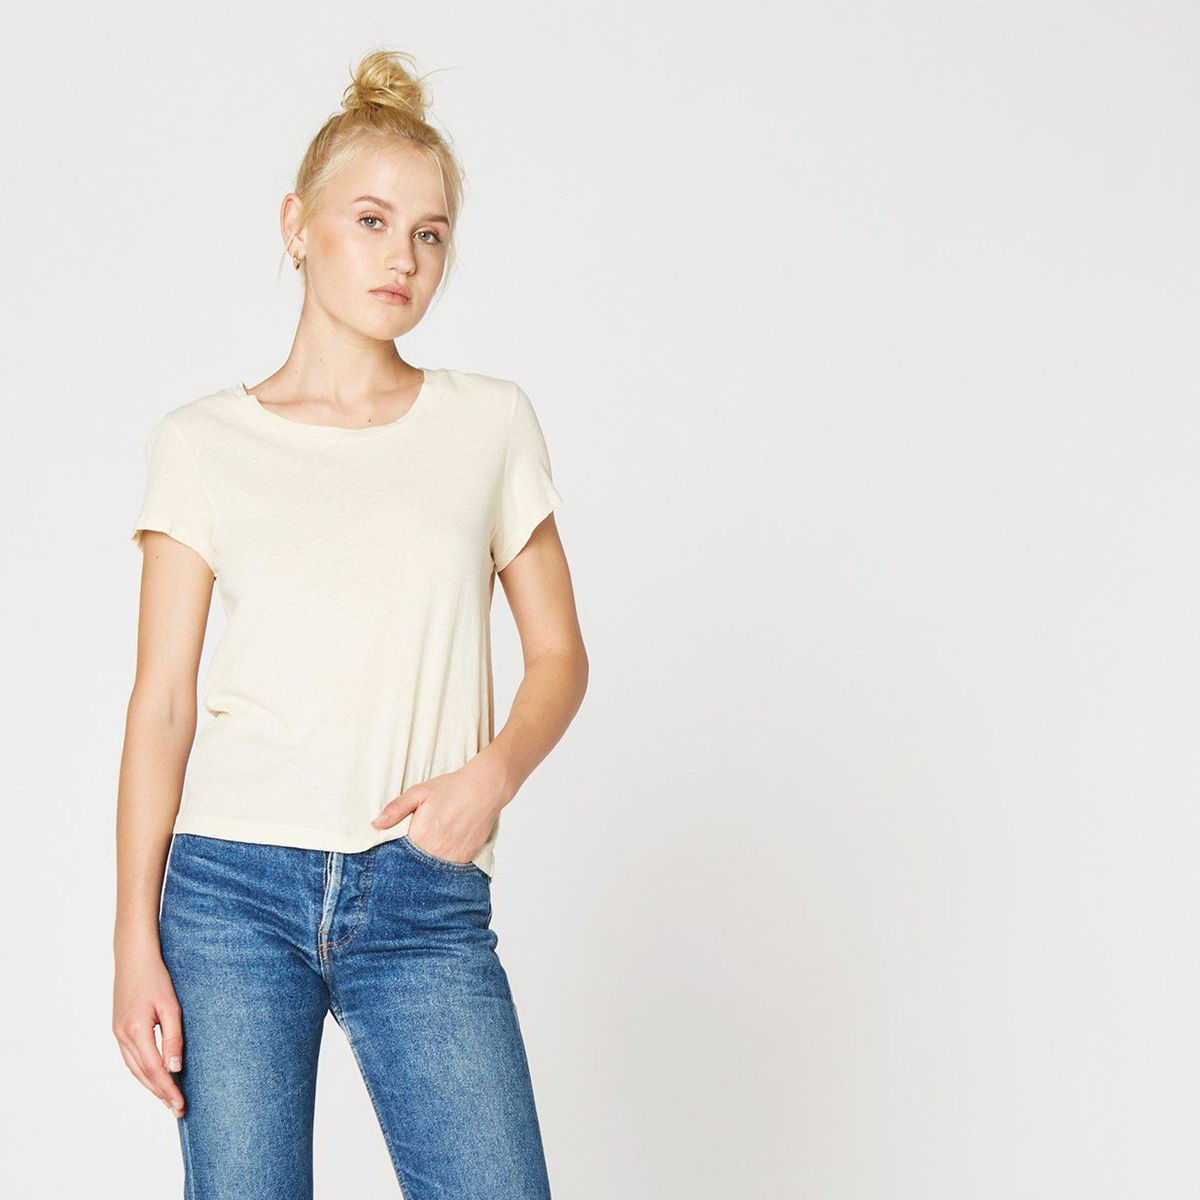 A crew neck T-shirt with jeans